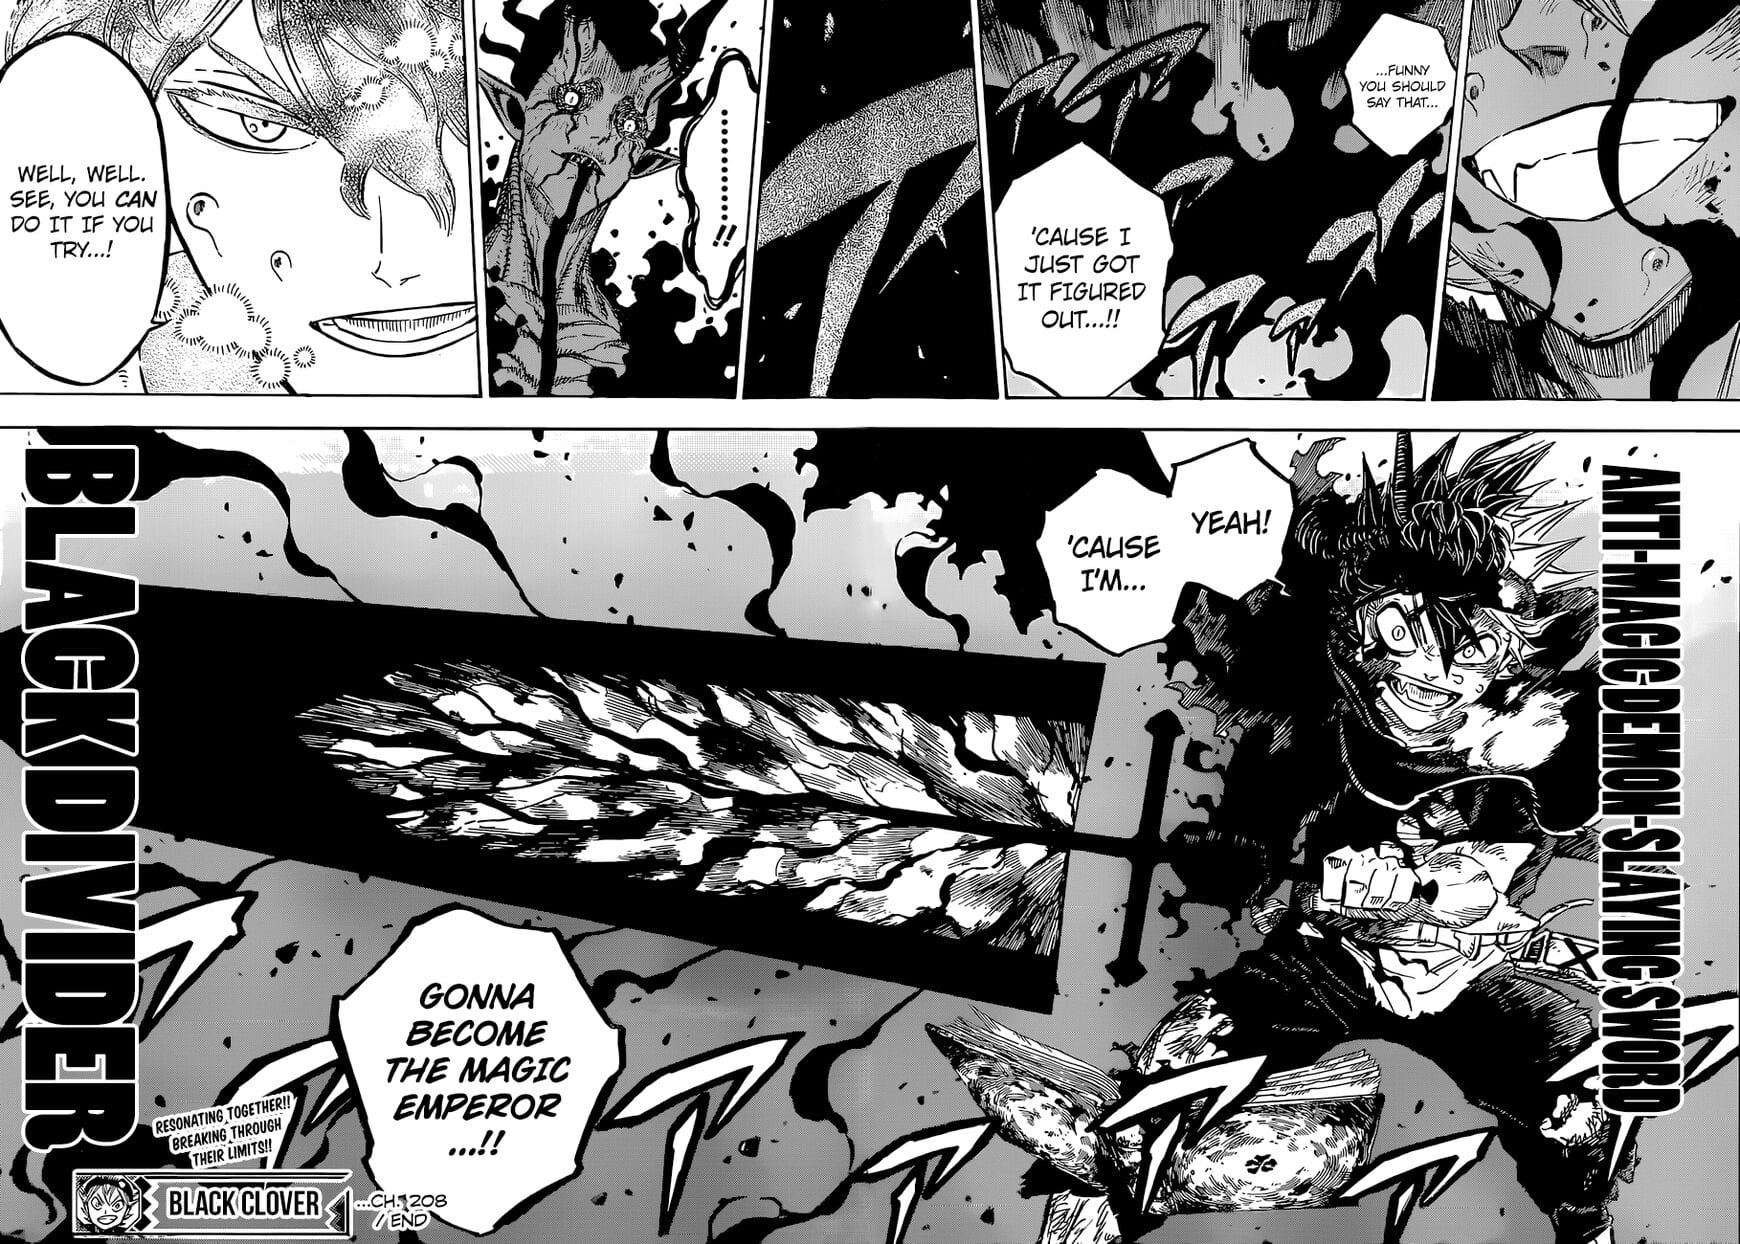 Black Clover Chapter 210 Spoilers